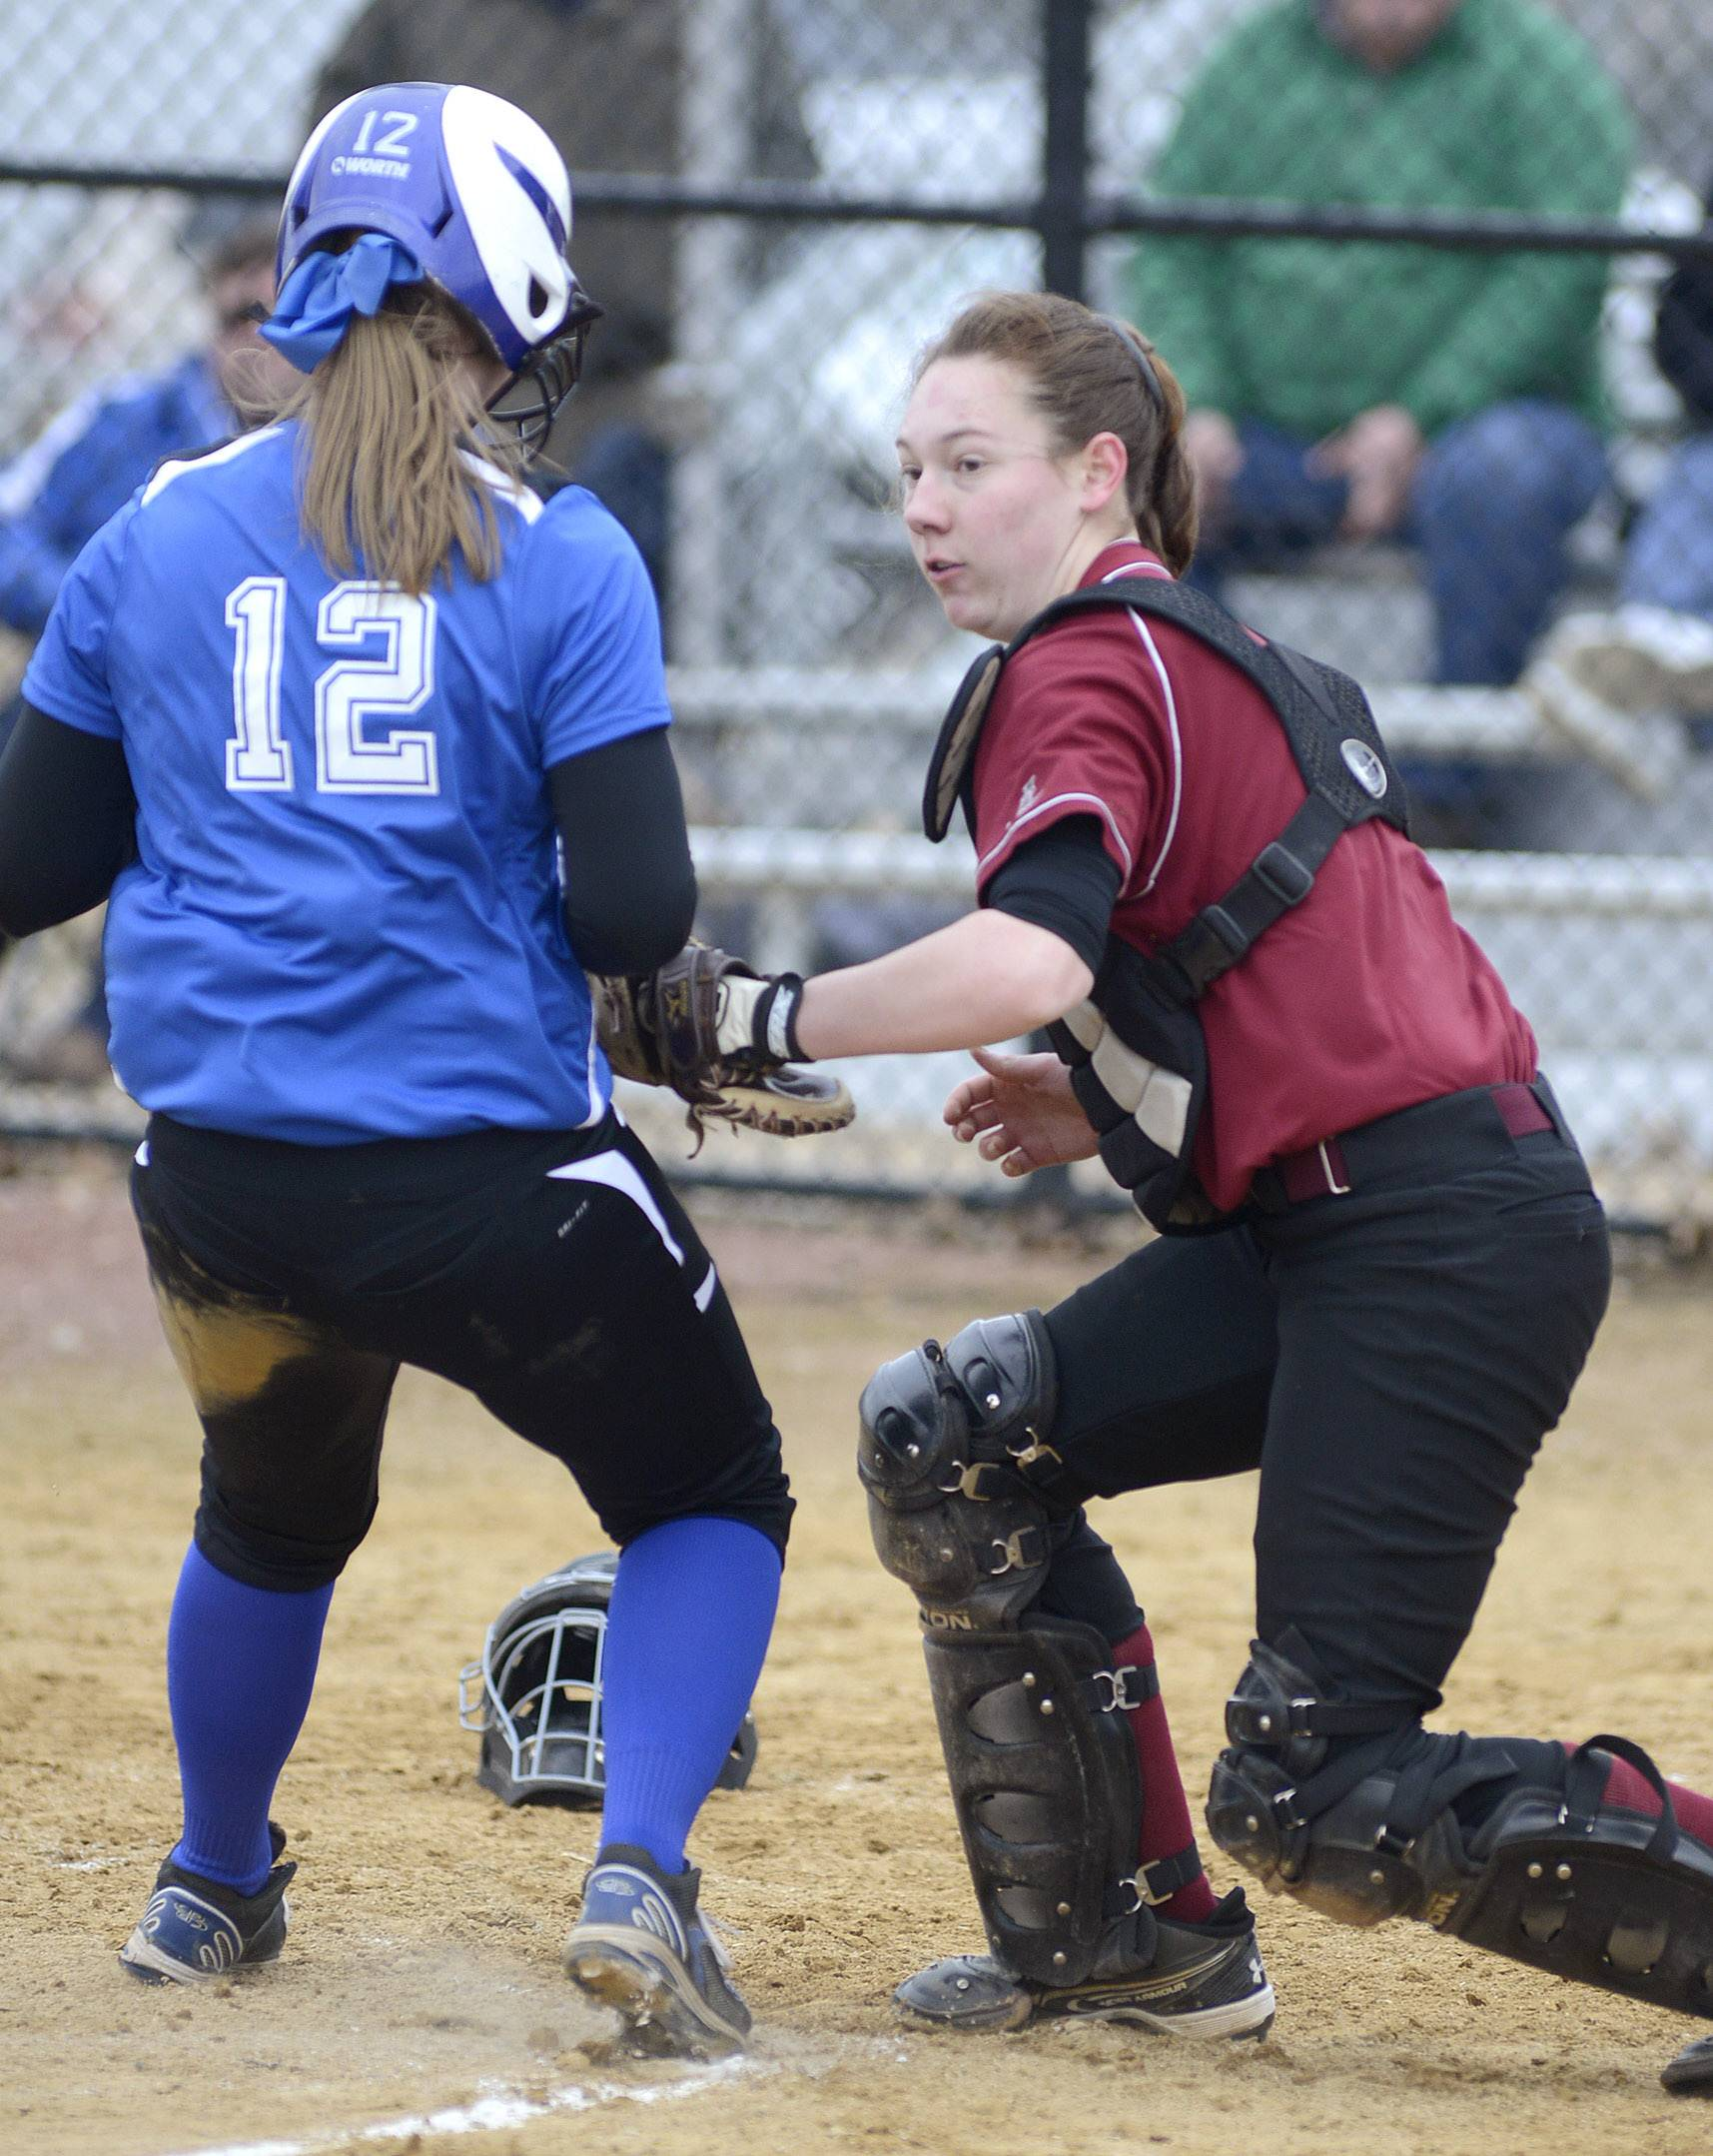 St. Charles North's Abby Howlett meets Schaumburg catcher Elaine Walker at home plate last spring. Walker excelled as a freshman this season at Aurora University.